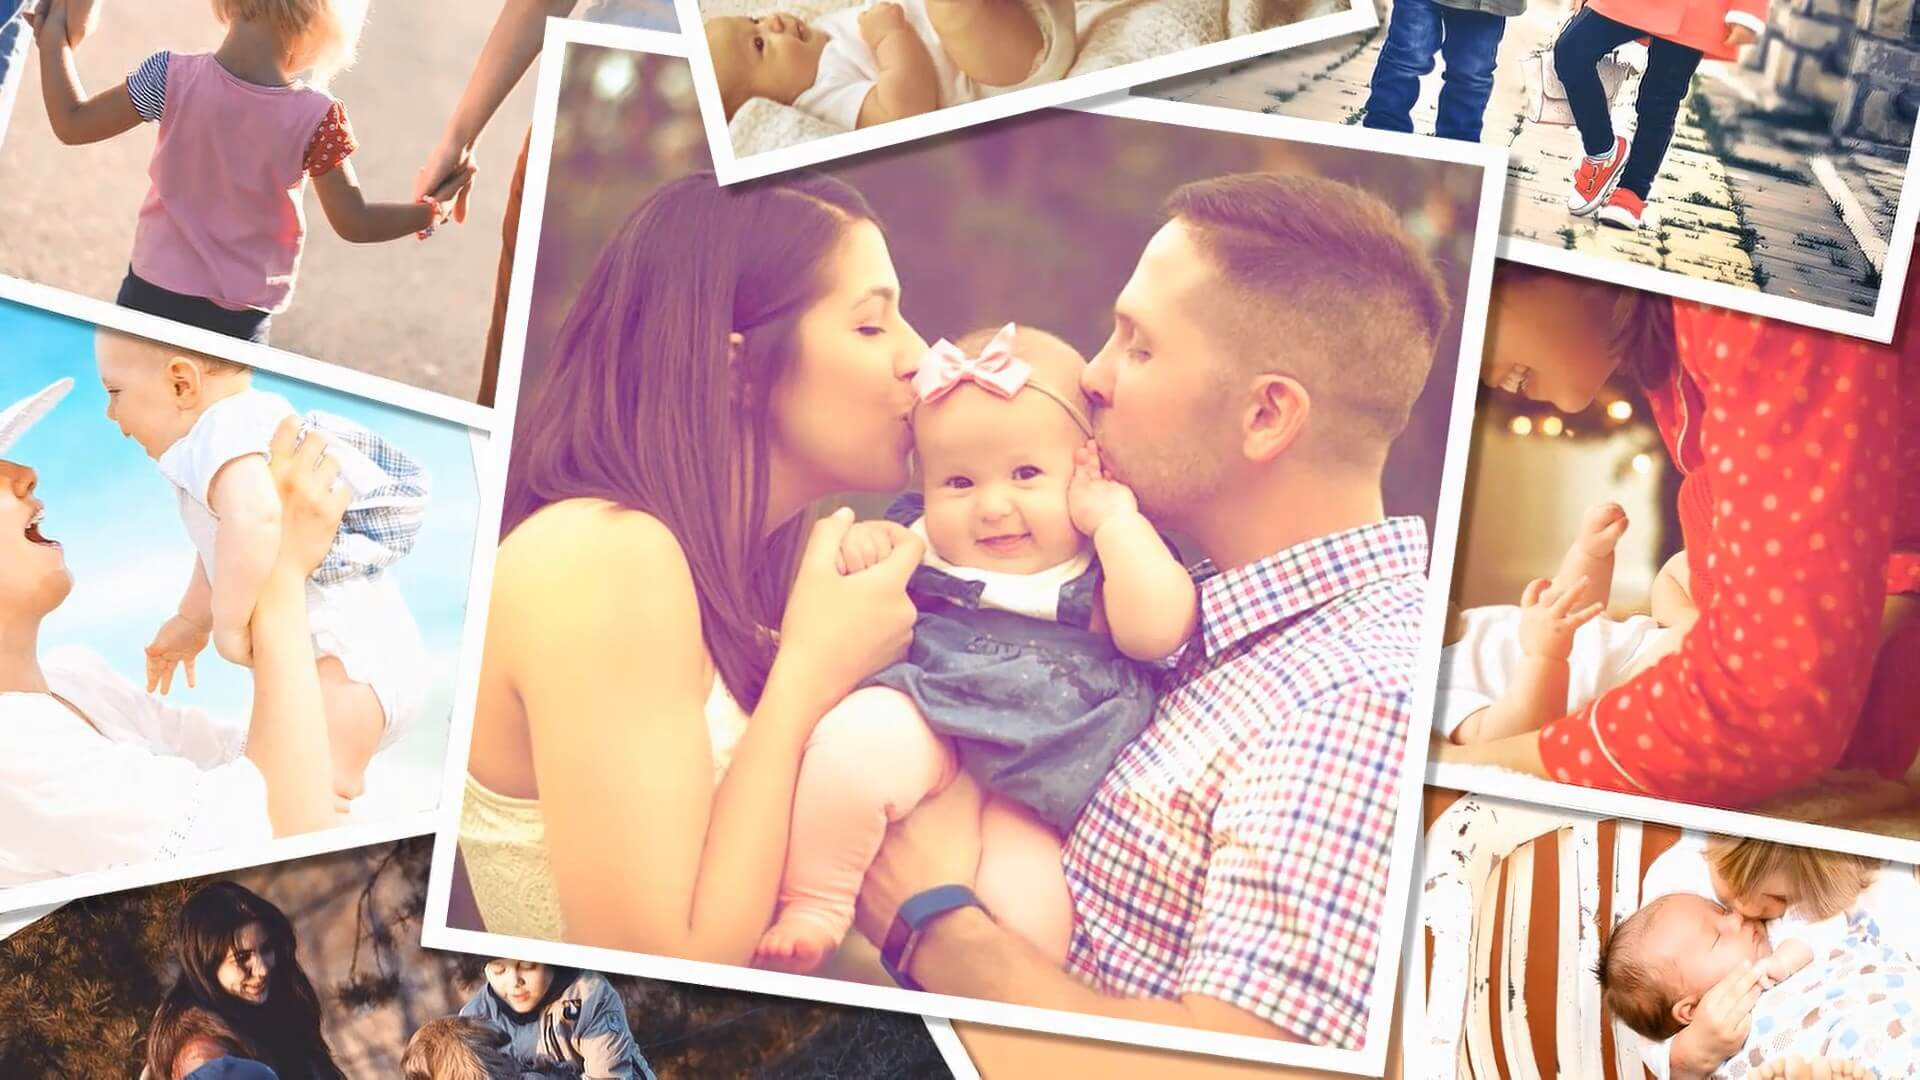 Family Photo Video Templates